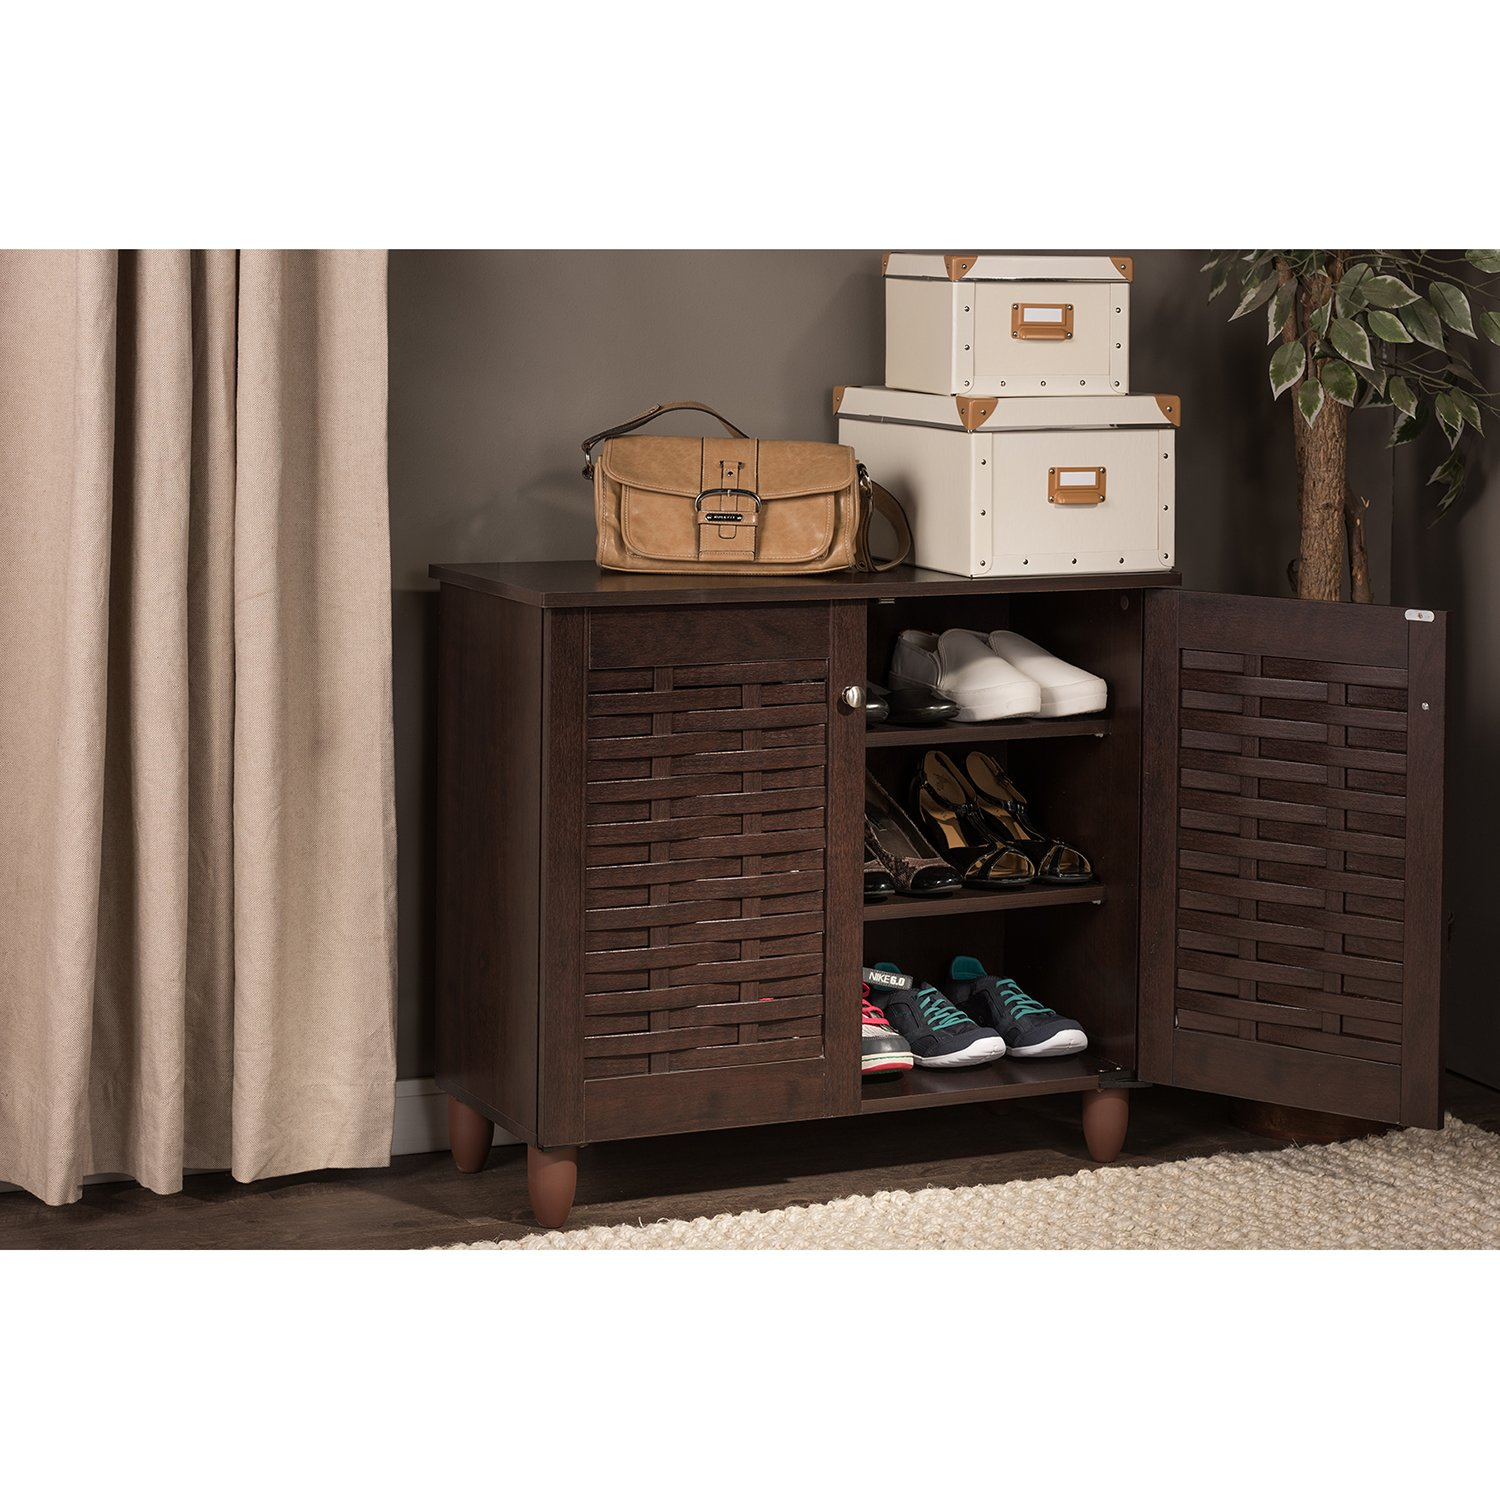 Amazon.com: Wholesale Interiors Baxton Studio Winda Modern And Contemporary  2 Door Dark Brown Wooden Entryway Shoes Storage Cabinet: Kitchen U0026 Dining